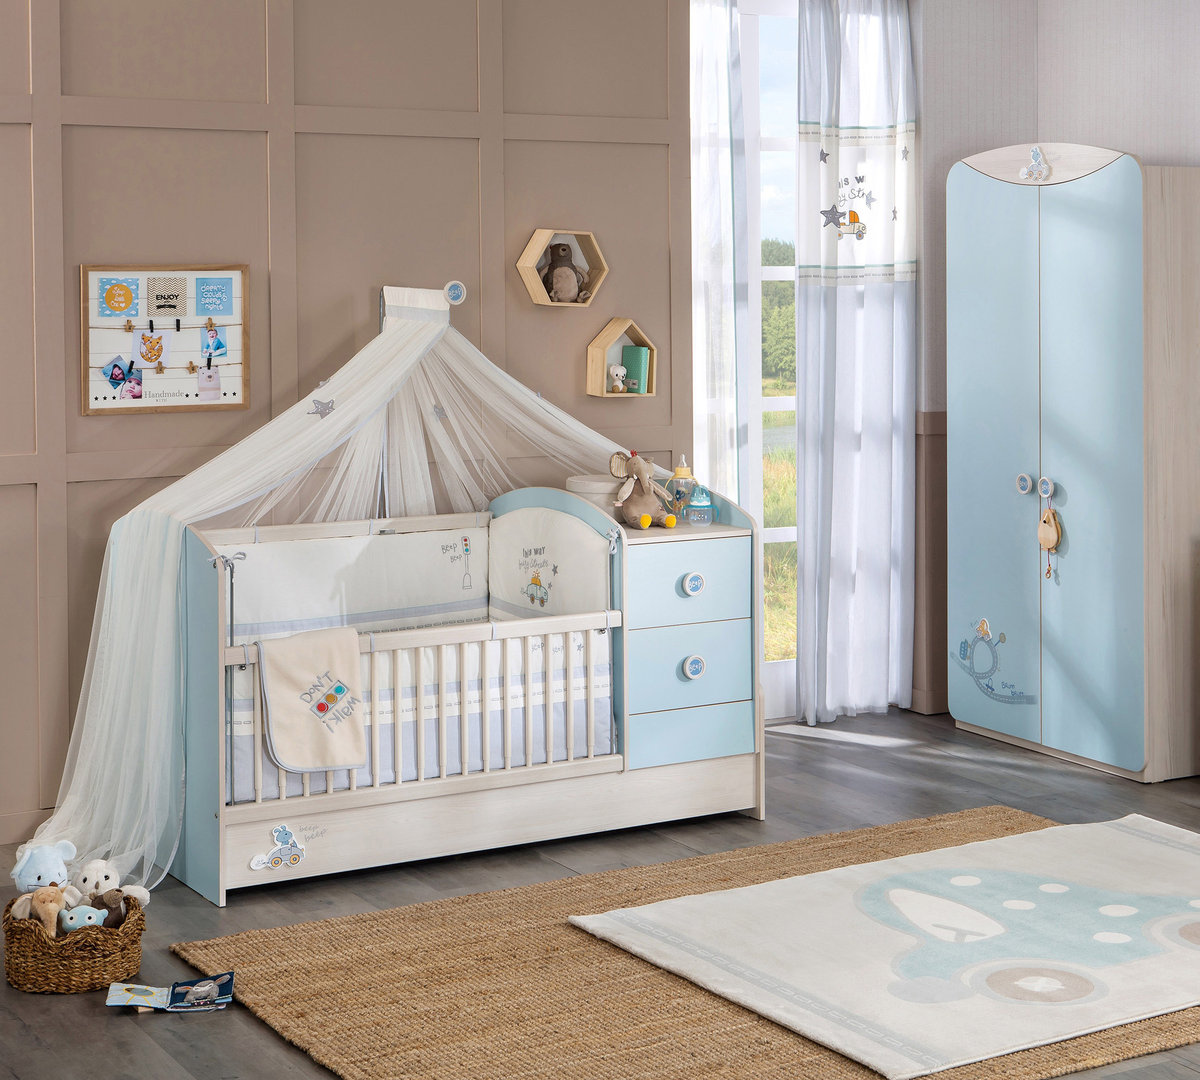 bymm kinderzimmer babyzimmer babyblue 6 teil precogs. Black Bedroom Furniture Sets. Home Design Ideas